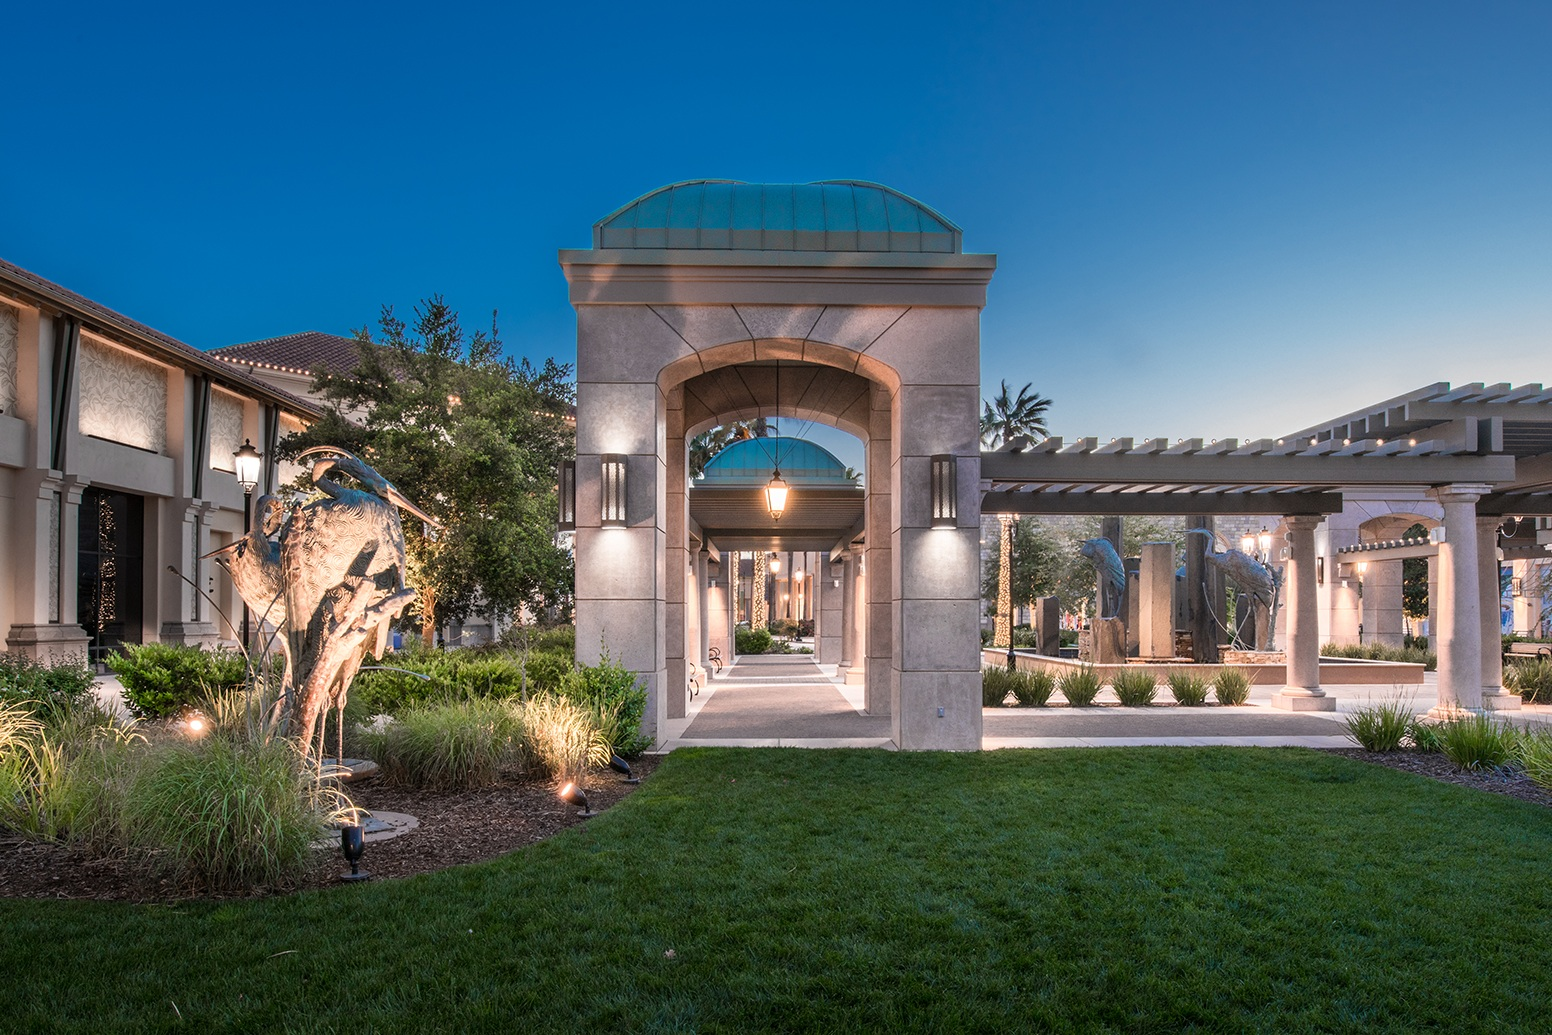 The Palladio - in Folsom